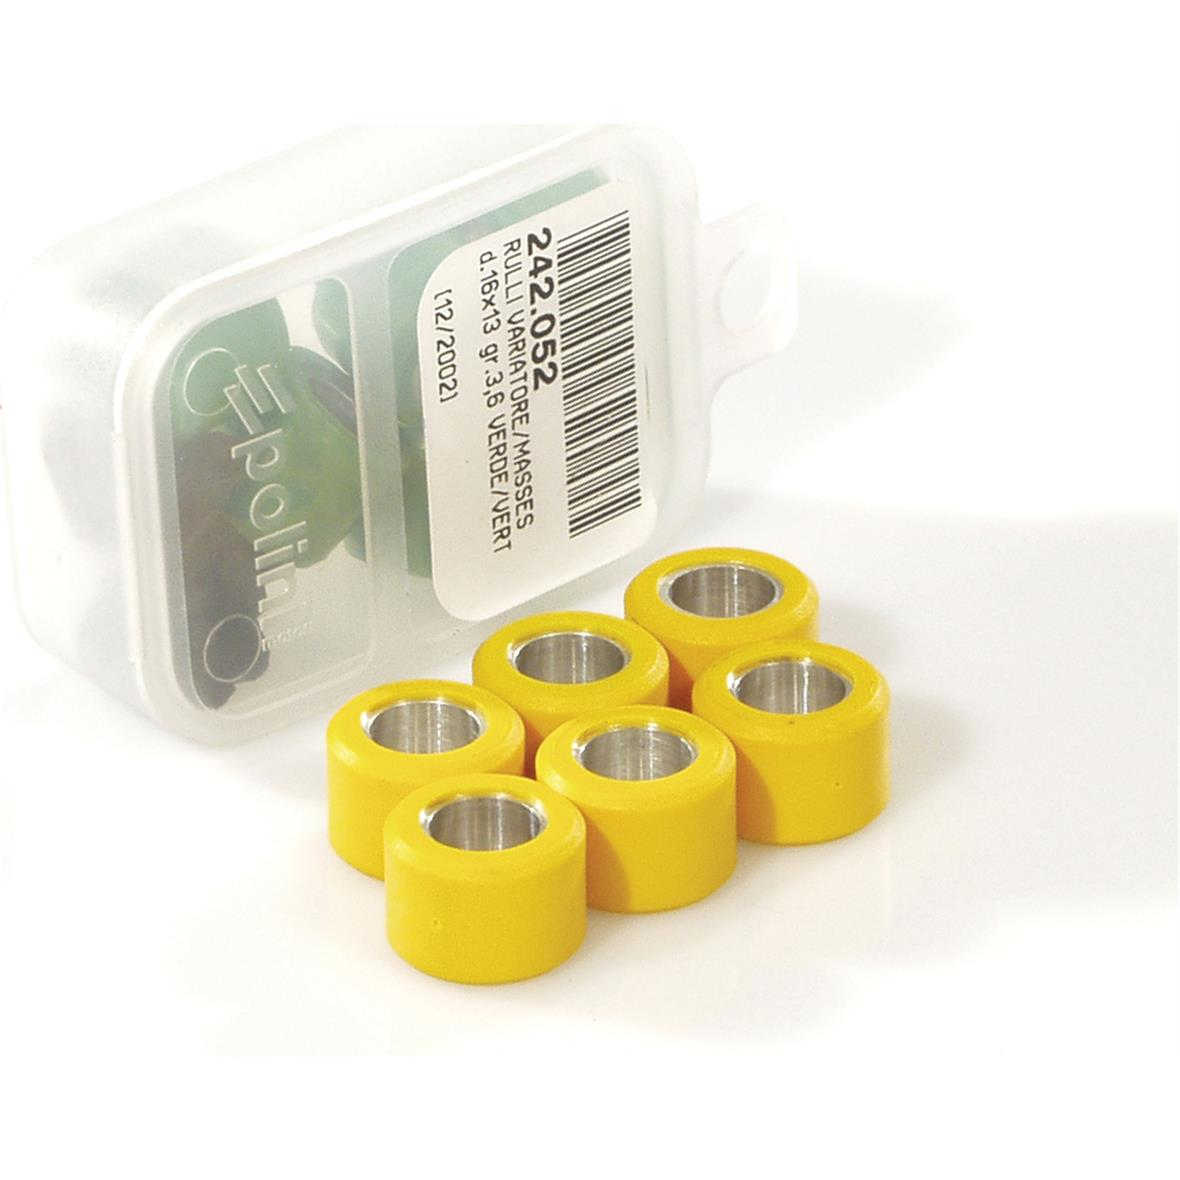 Product Image for 'Variator Rollers POLINI 15x12 mm 3,0gTitle'